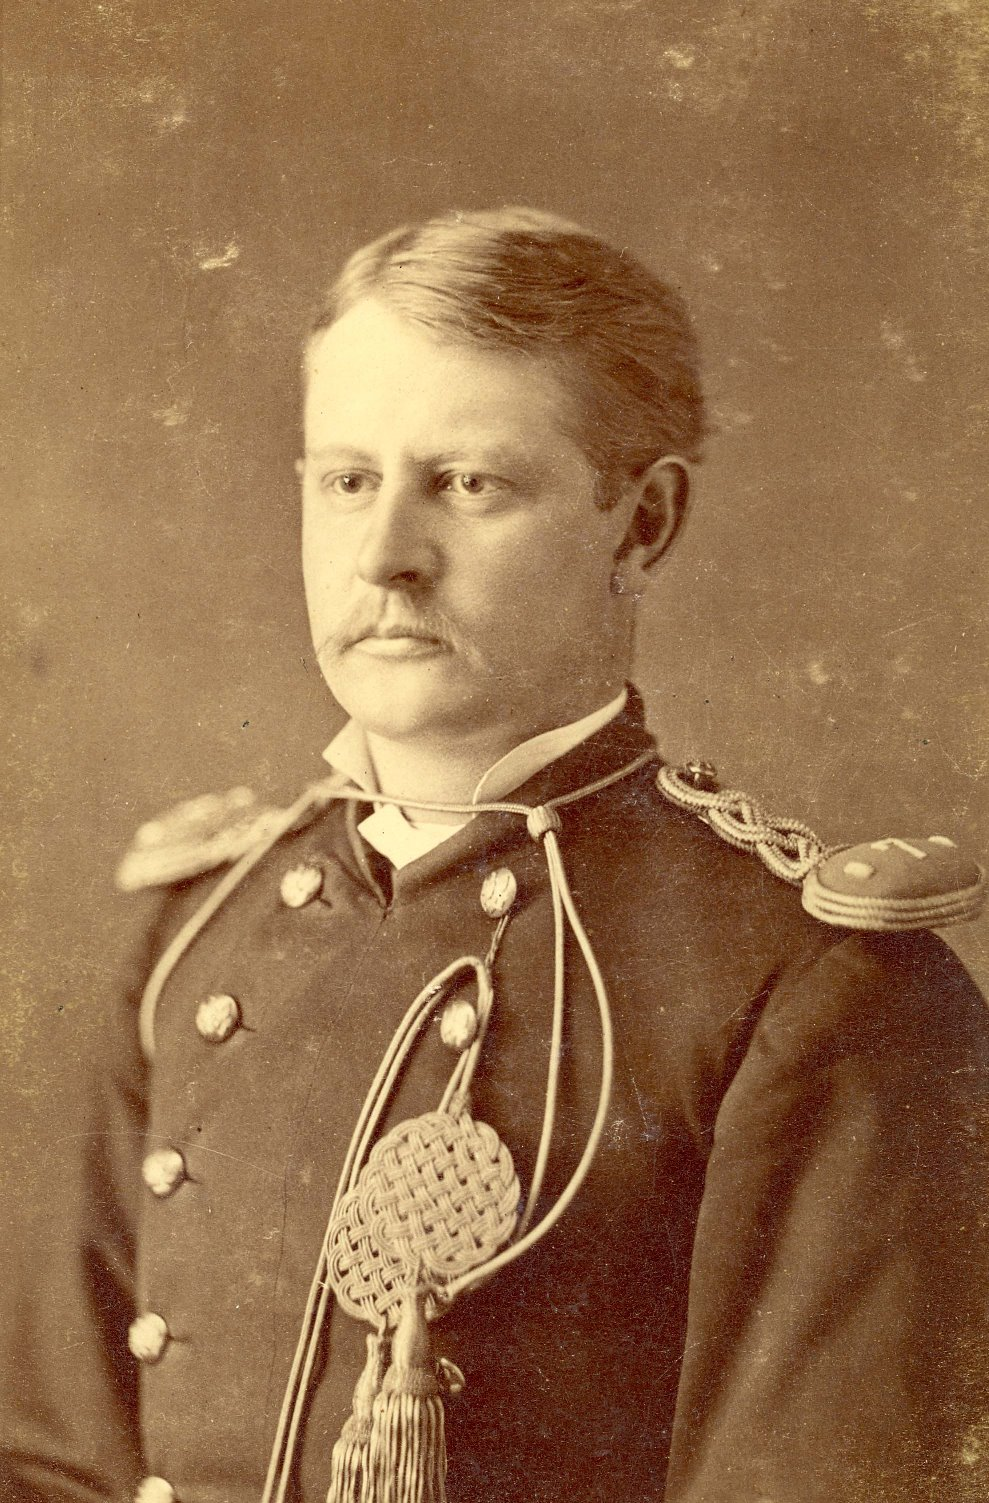 Lieutenant James Calhoun